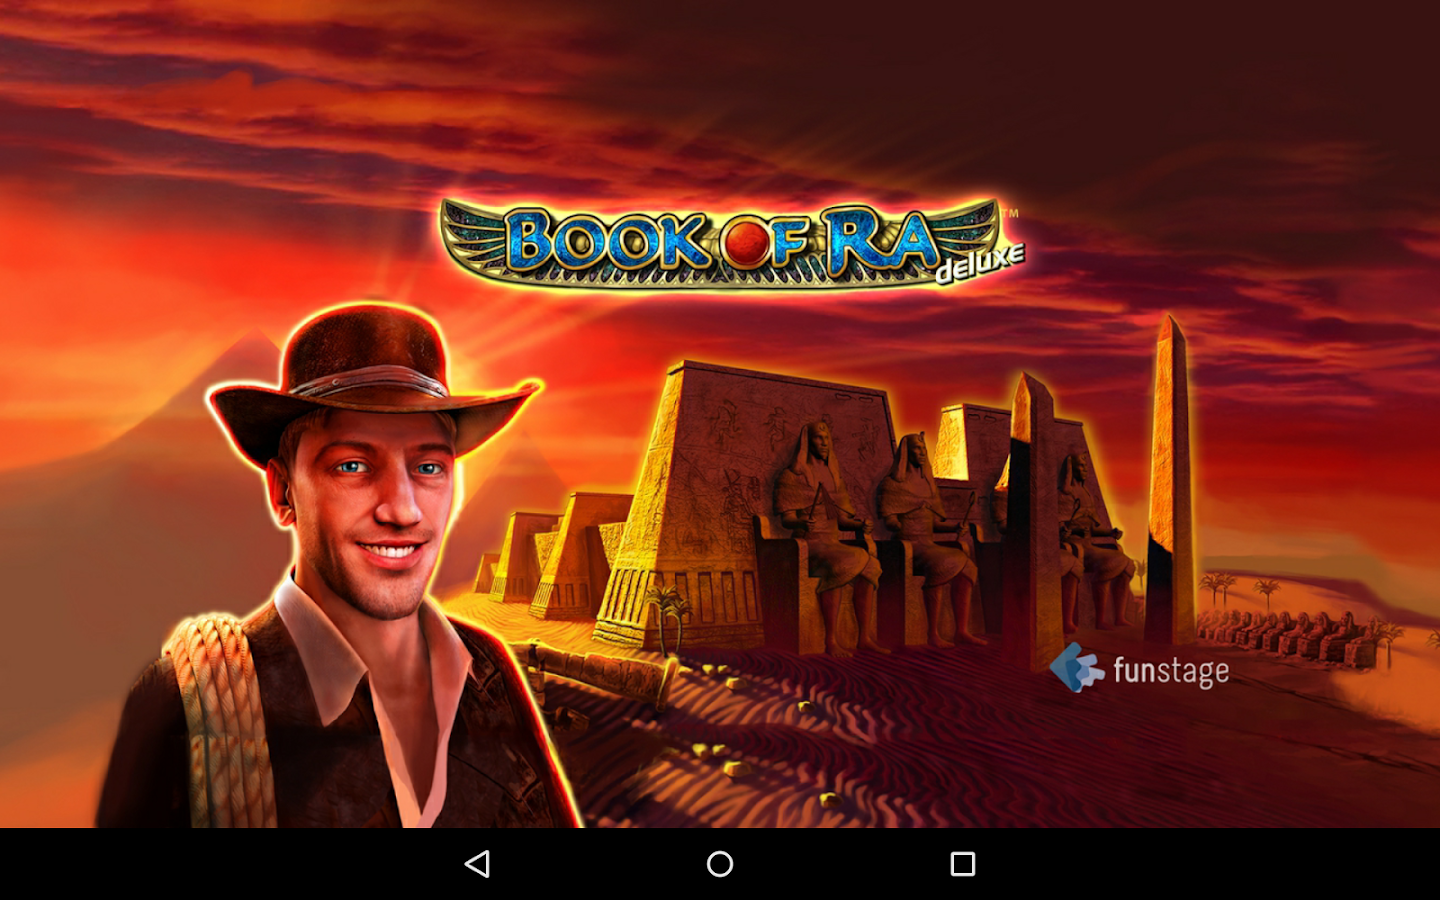 book of ra app kostenlos download